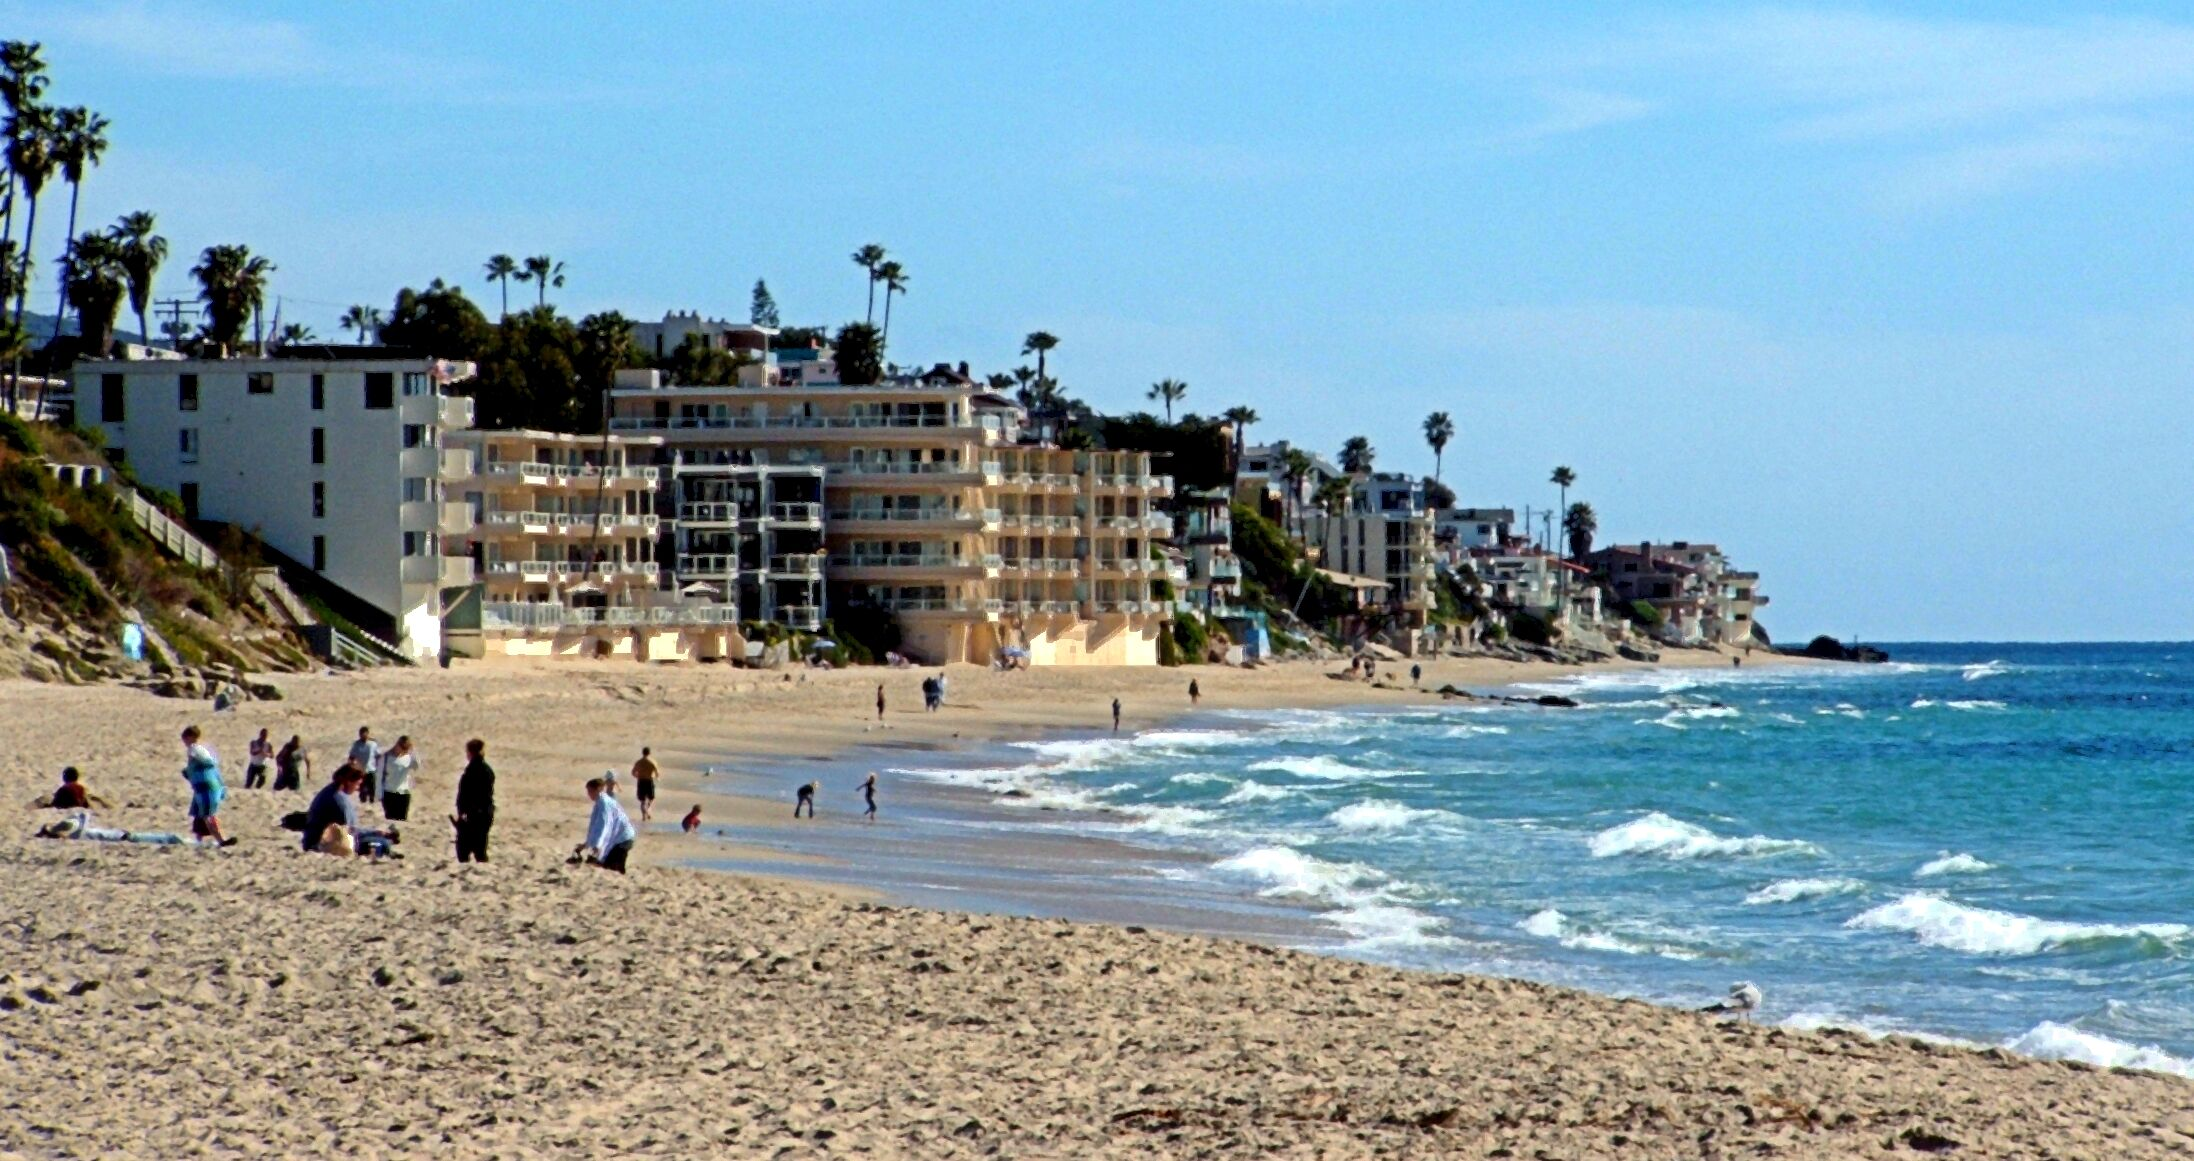 Best Beaches for a Day Trip Near Irvine, CA